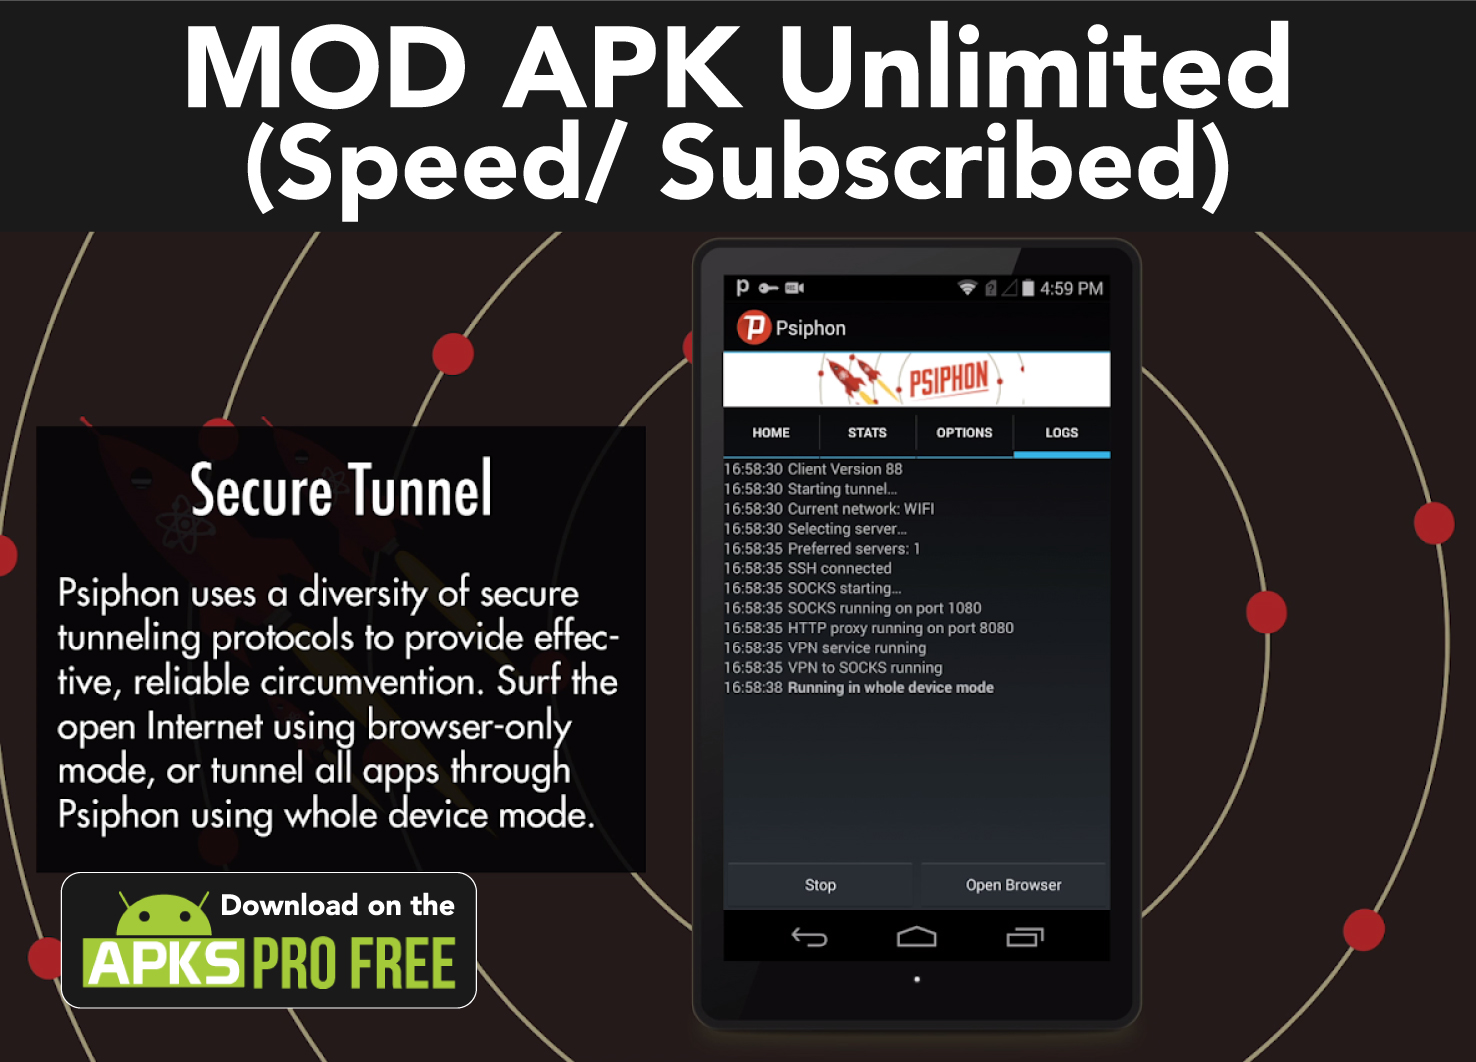 Psiphon PRO Latest MOD APK (Unlimited Speed/Subscribed)